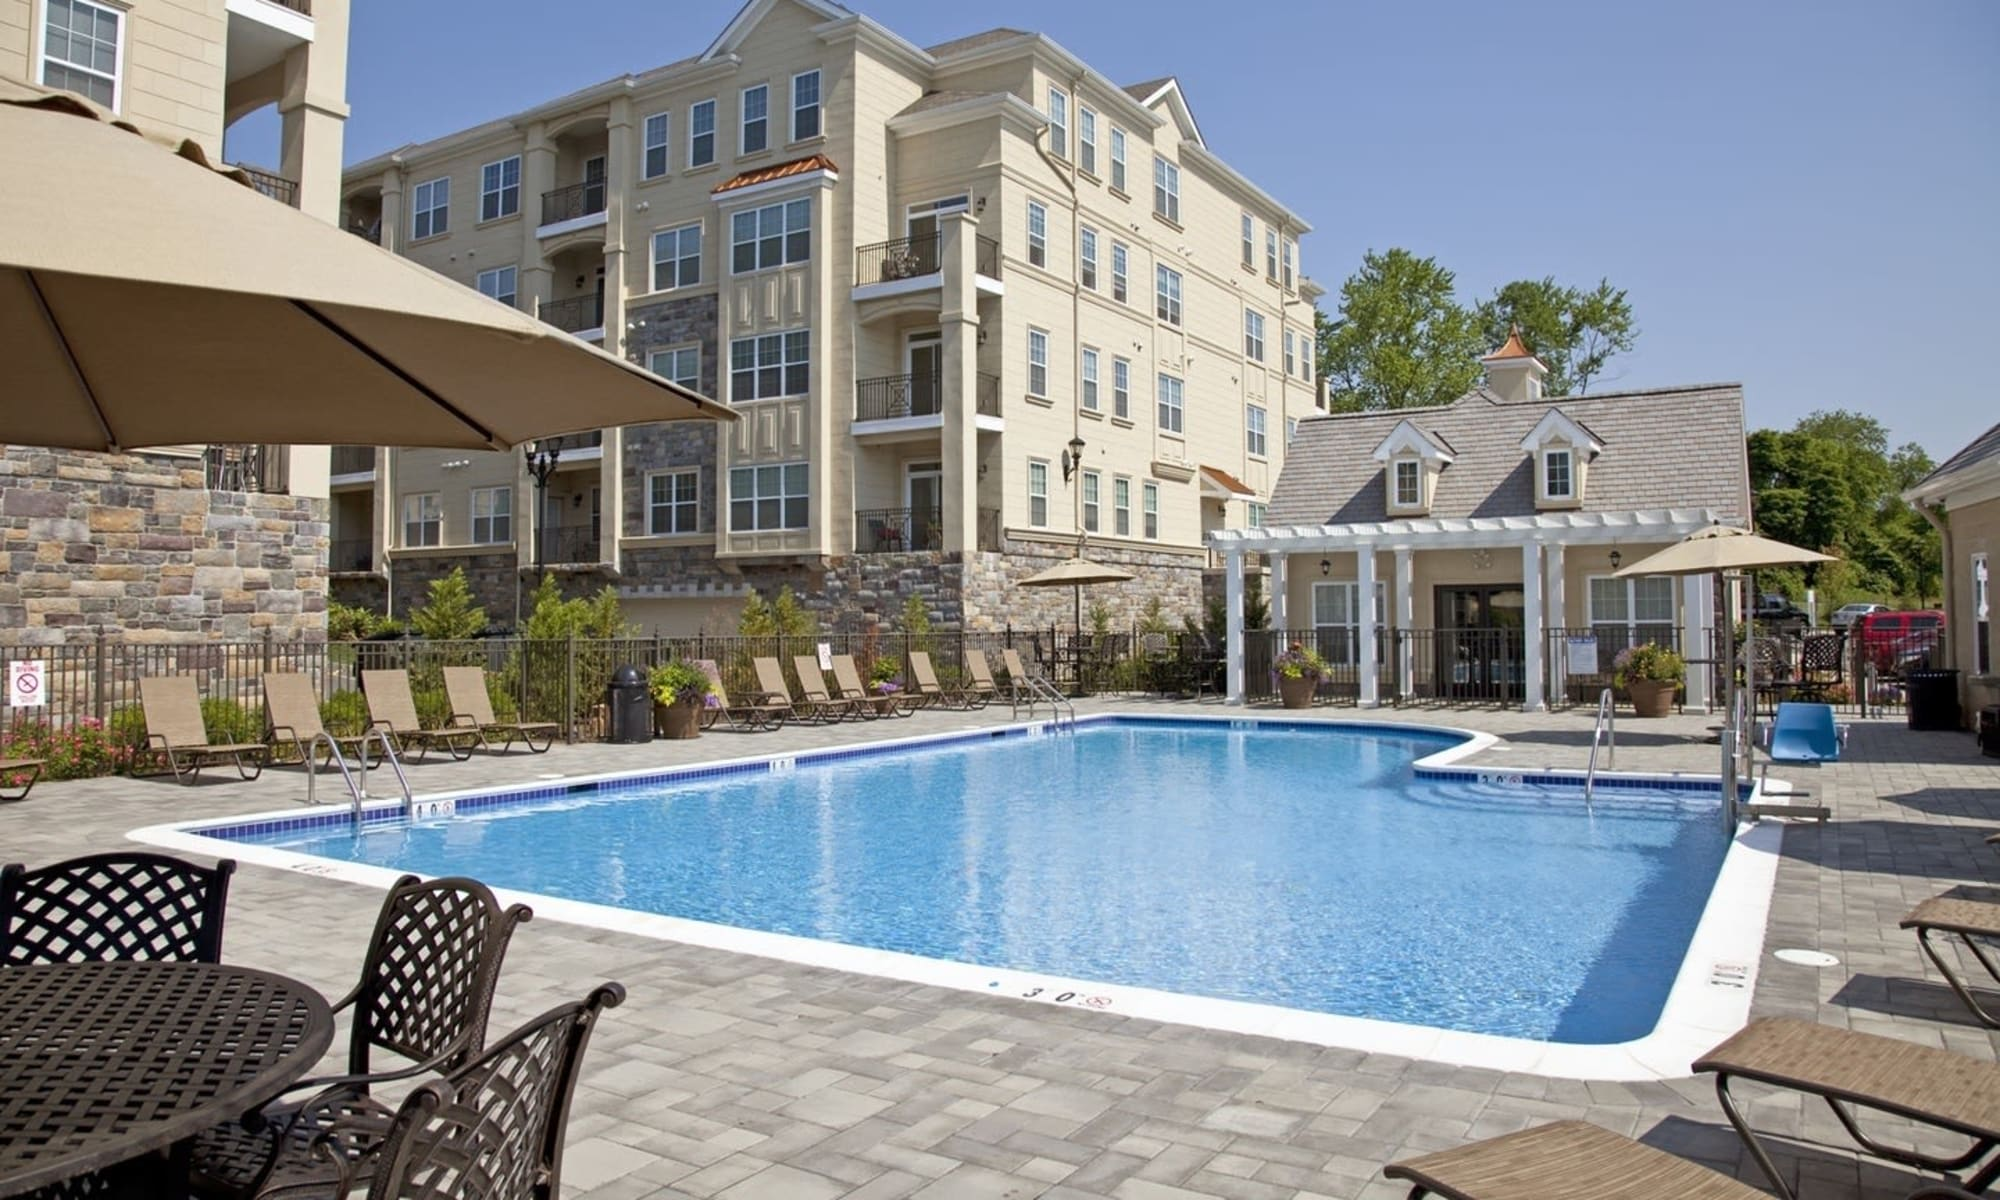 Apartments at Presidential Place Apartments in Lebanon, New Jersey